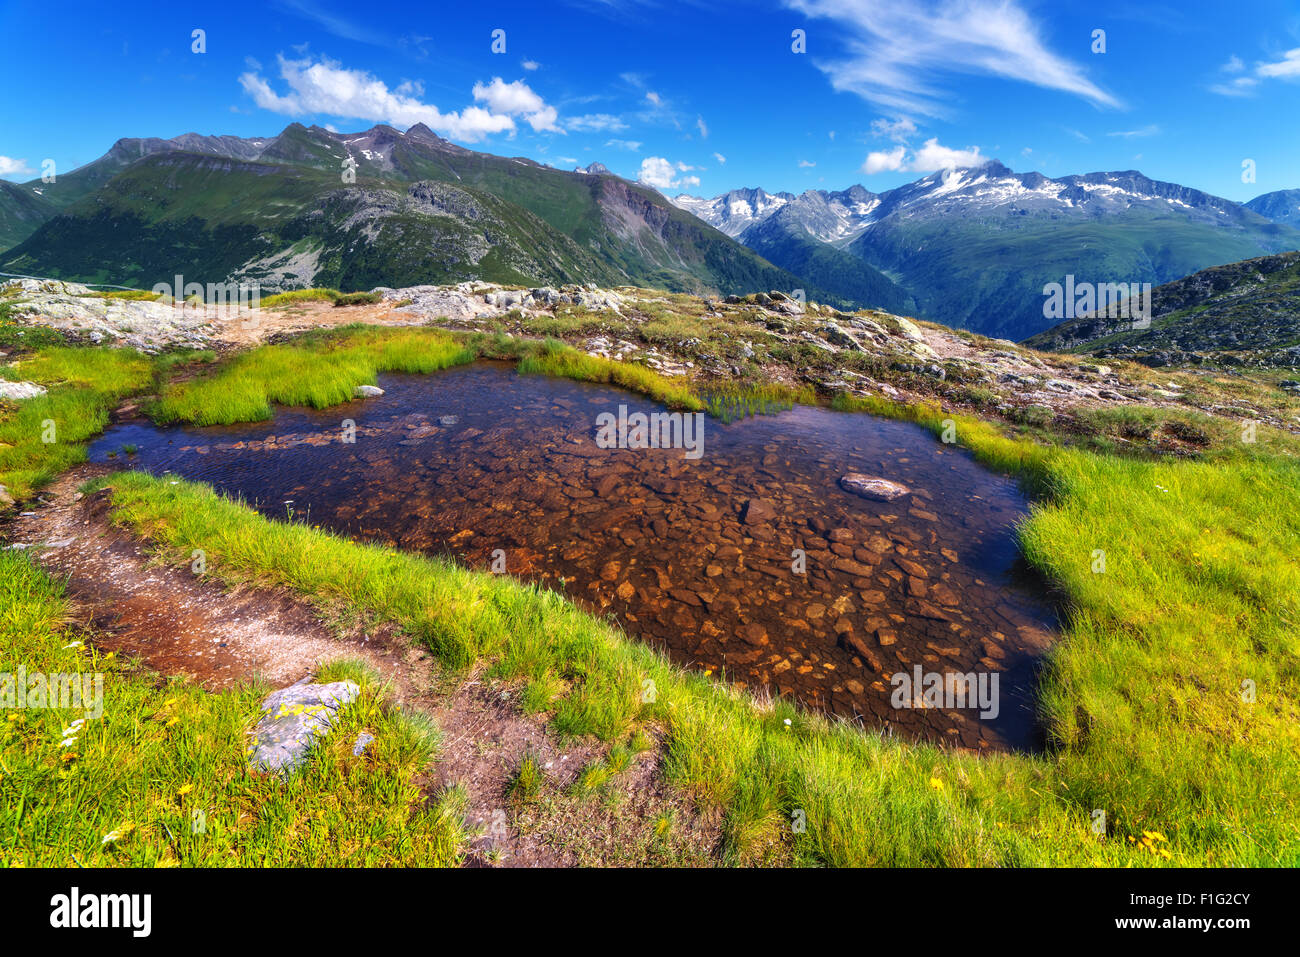 Amazing view of small lake near Totensee lake on the top of Grimselpass. Alps, Switzerland, Europe. - Stock Image